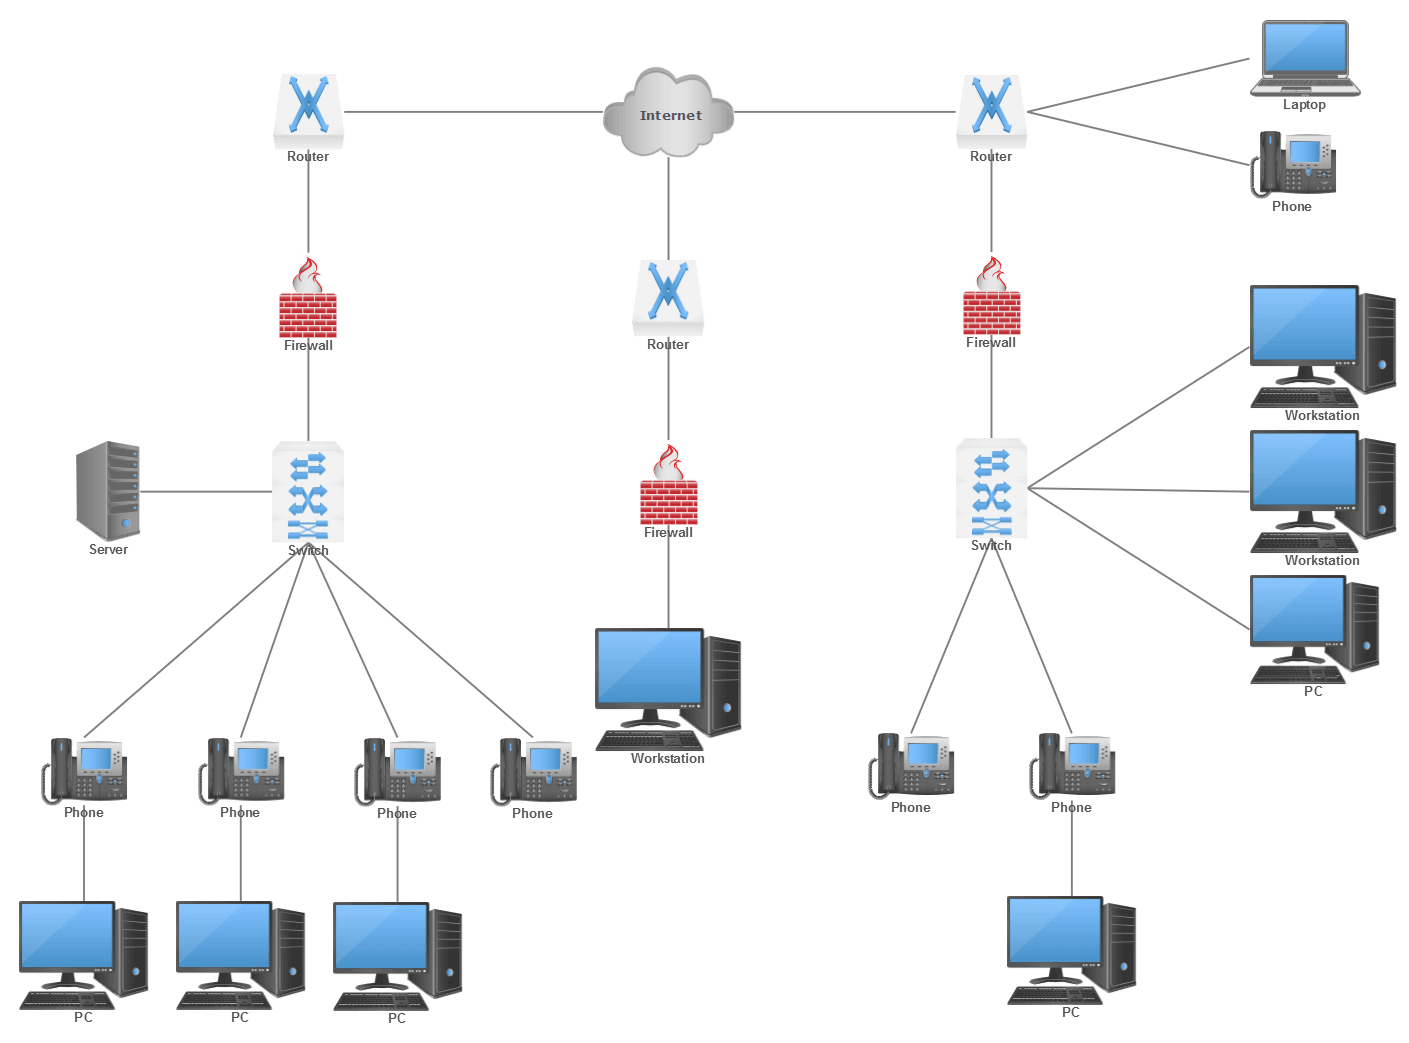 Network Diagram Software Get Free Templates to Map Networks – Network Diagram